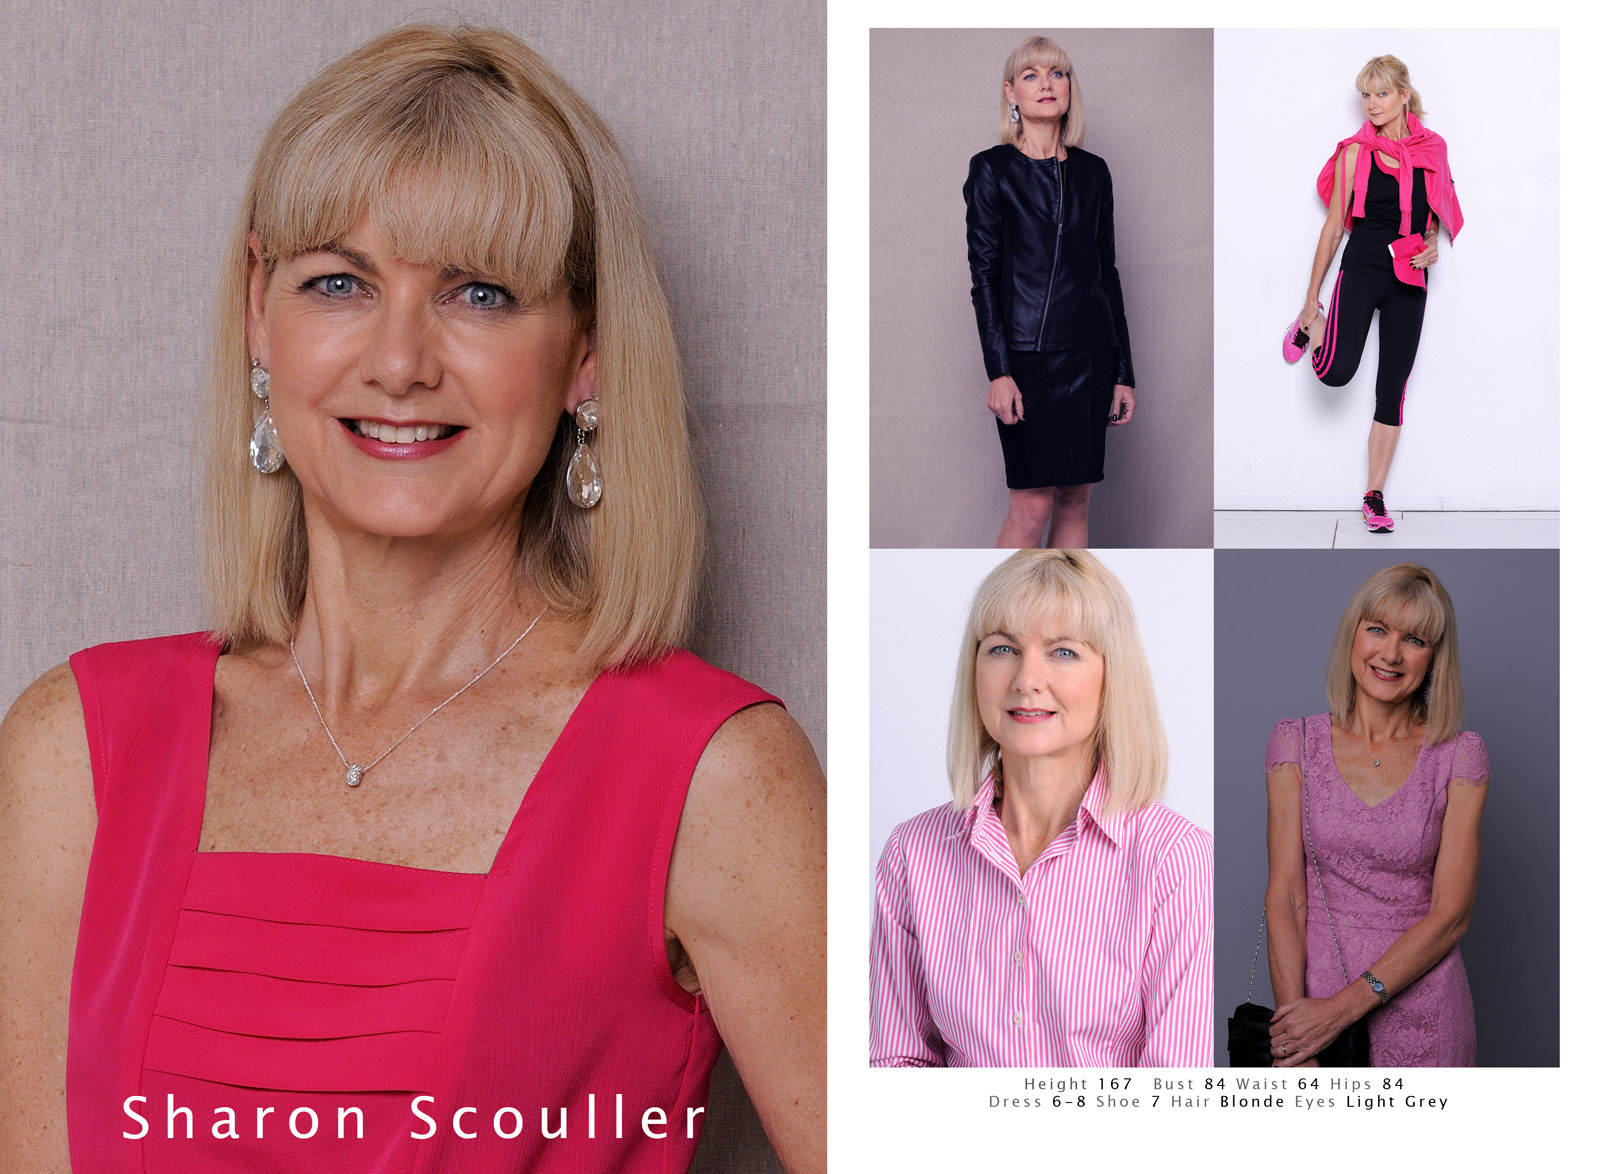 Comp Card, senior model. Modelling Portfolio headshots for Fashion, Fitness, Beauty for womwn and men.